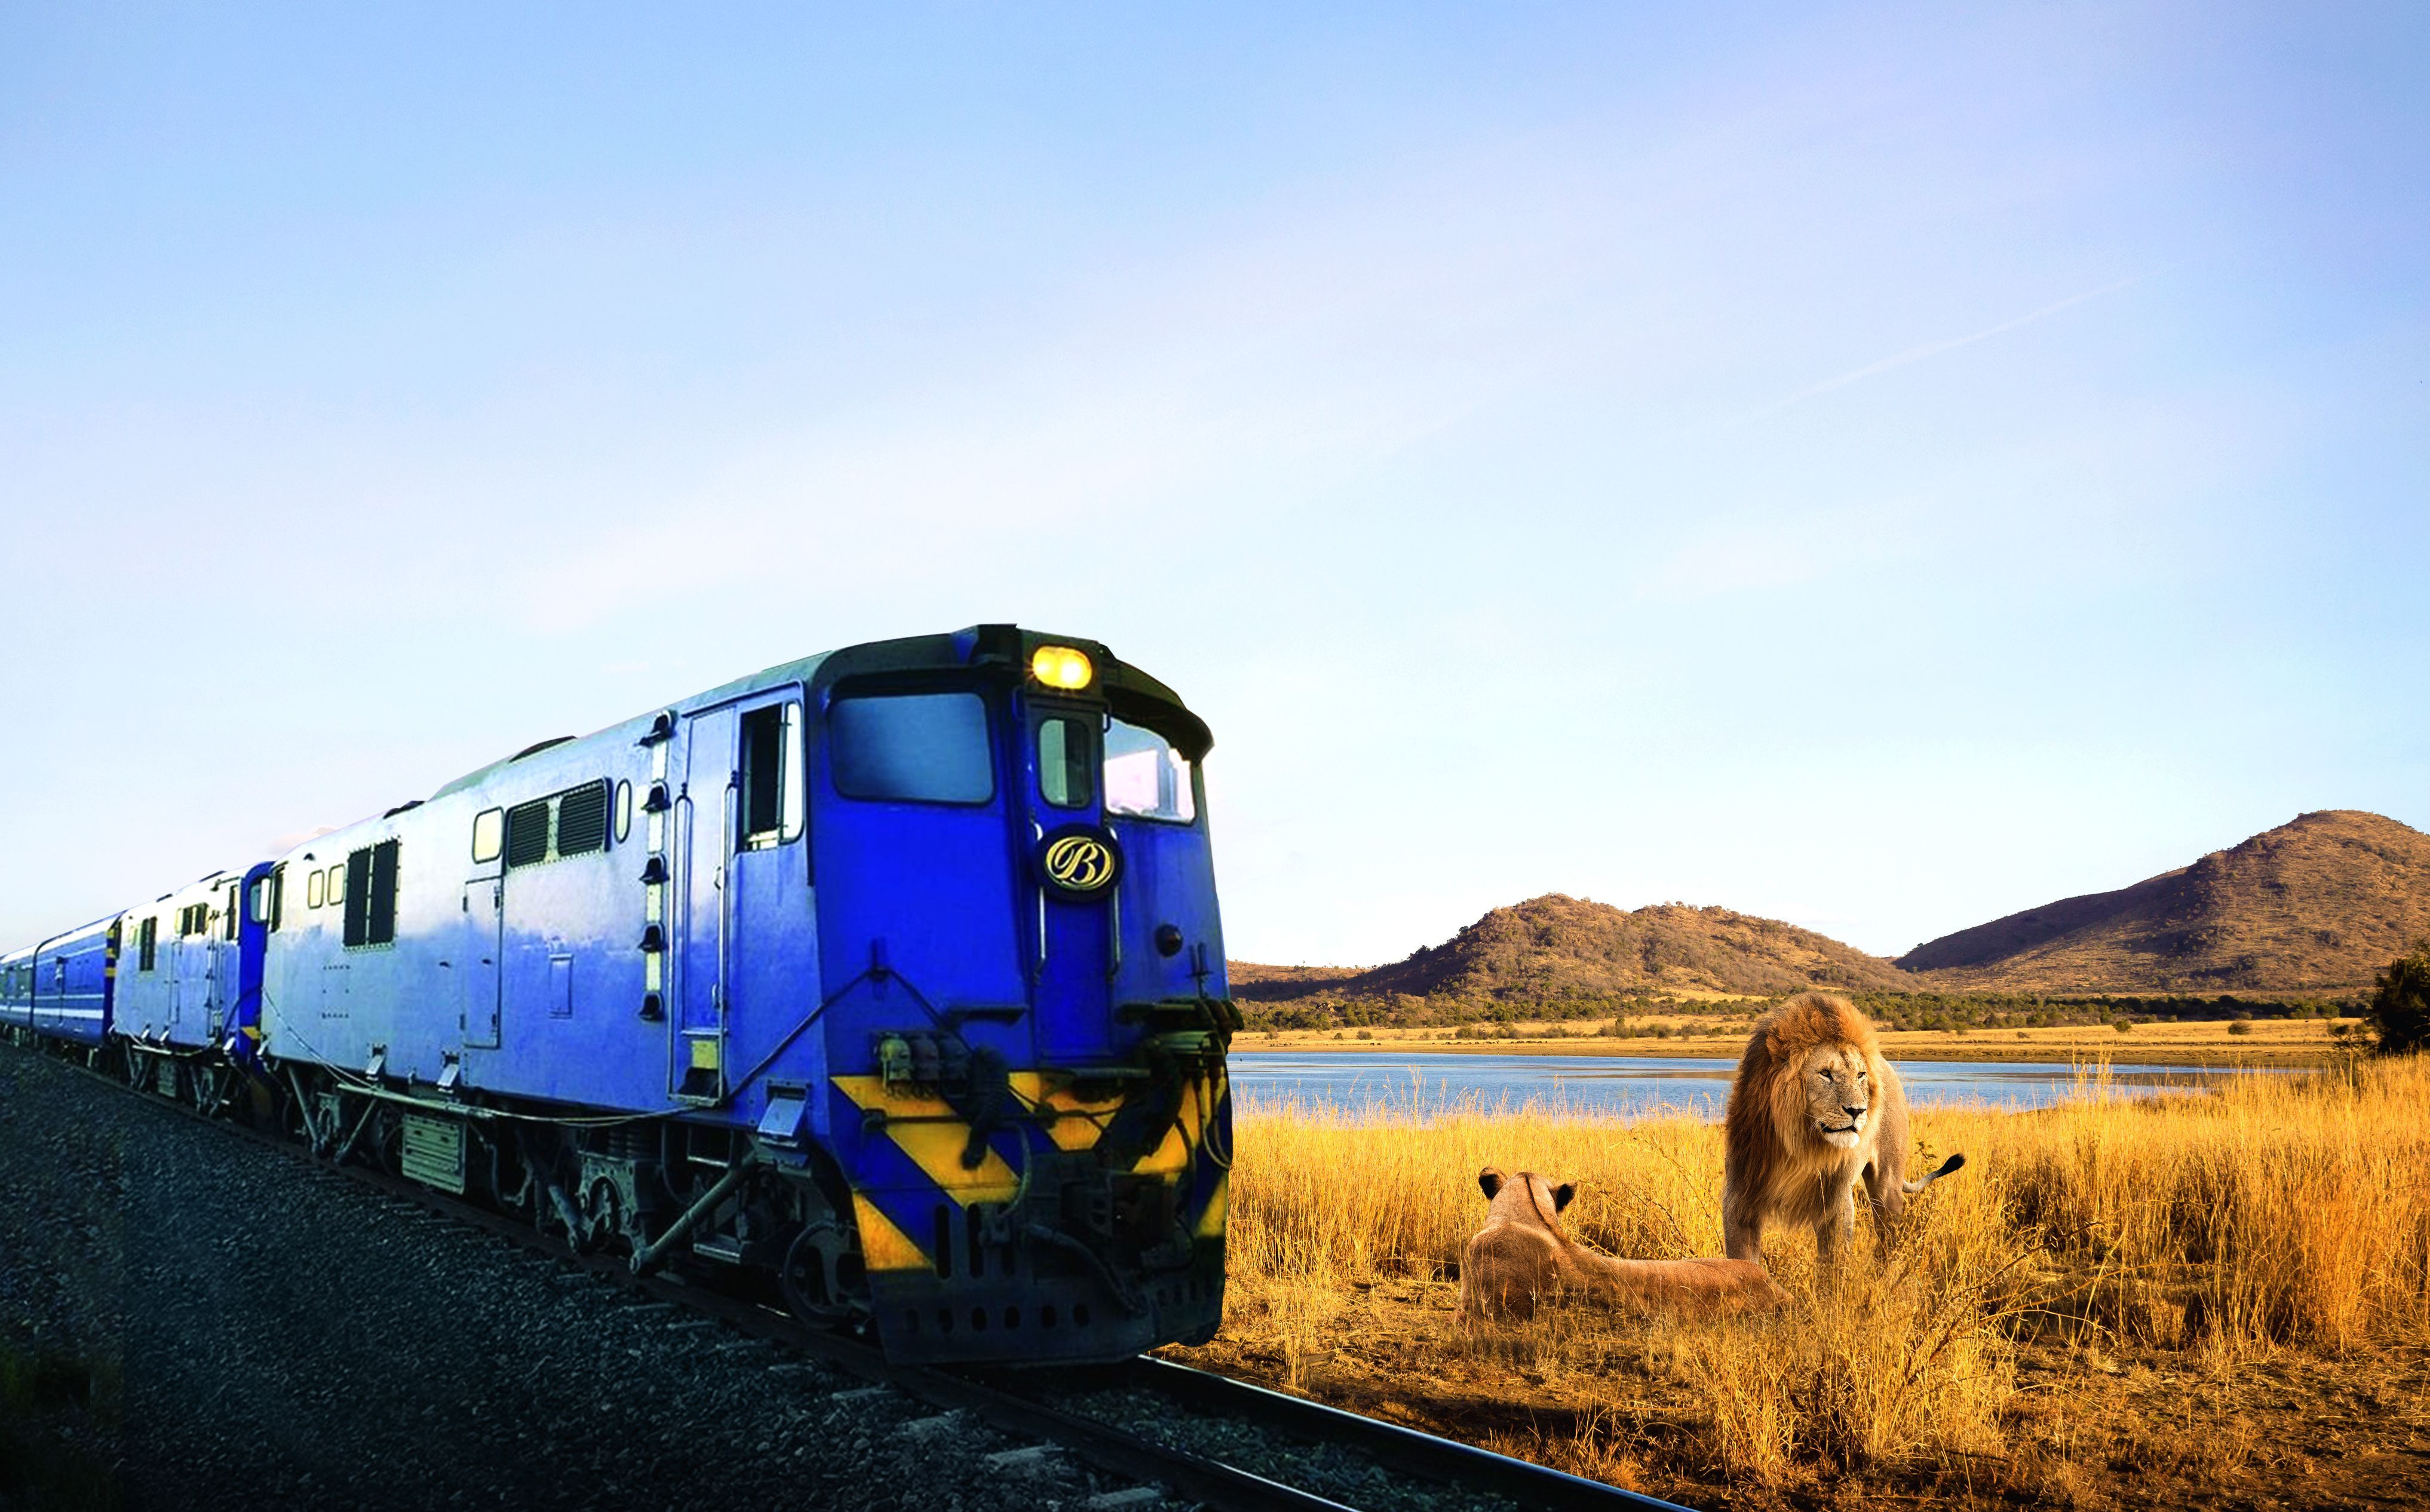 Wilds of Africa: Big Five Experience, Blue Train Traveller and Cunard Voyage